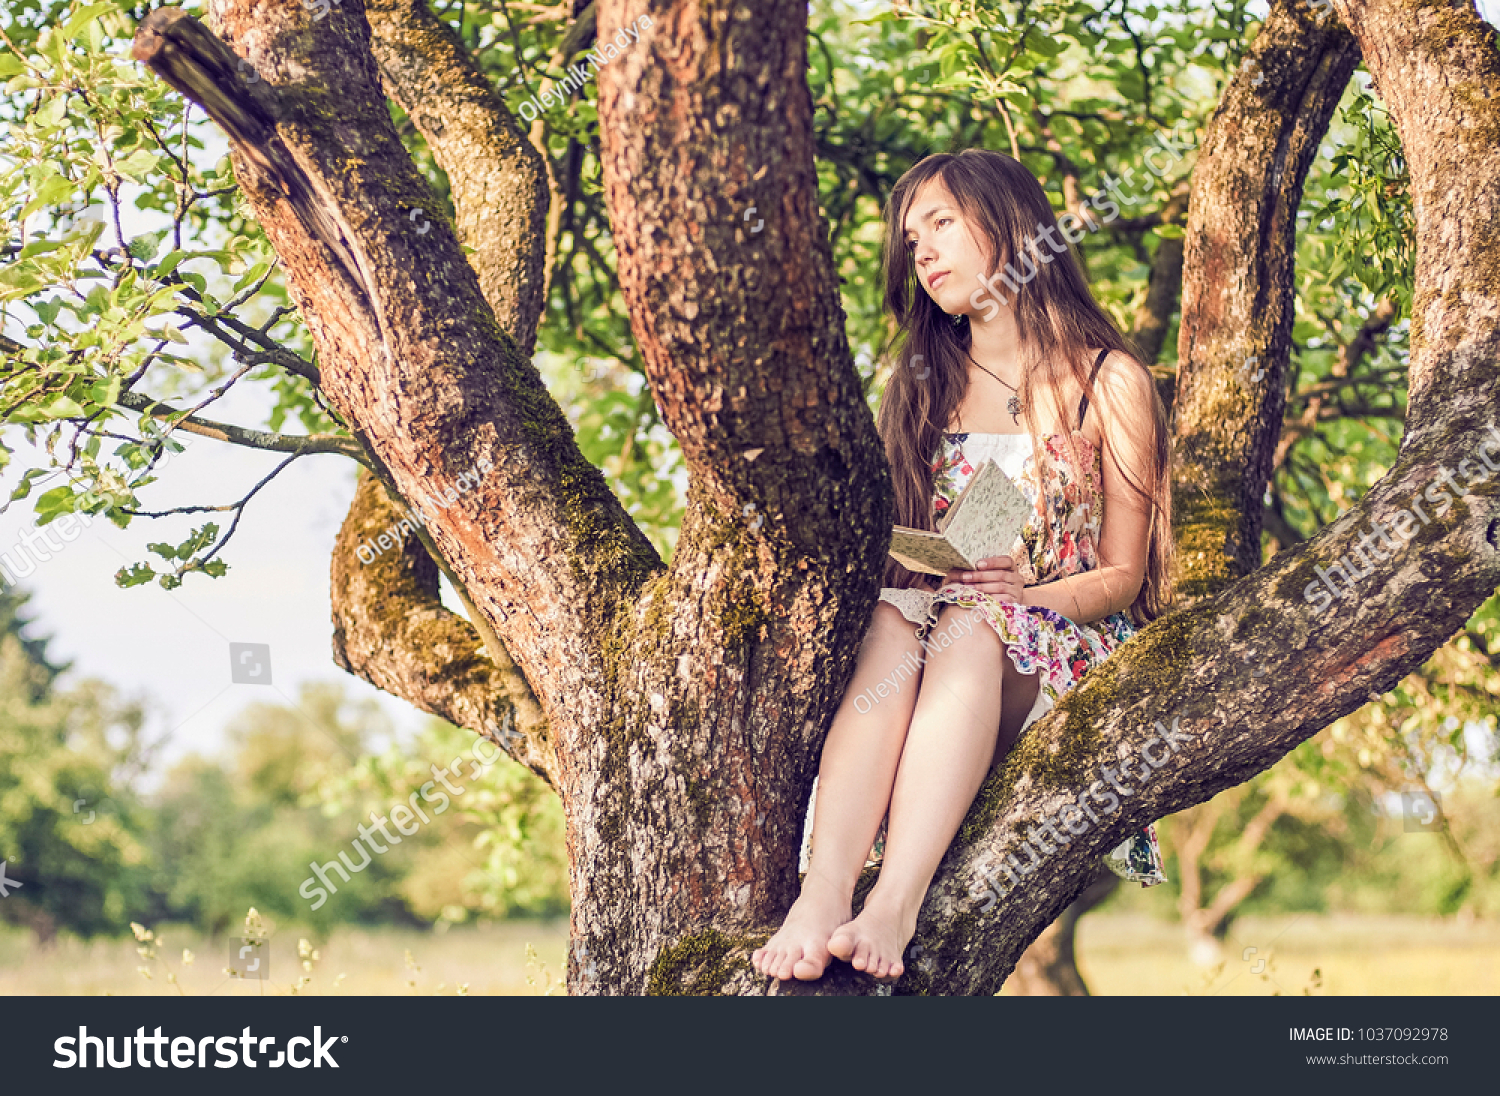 https://image.shutterstock.com/z/stock-photo-beautiful-romantic-girl-on-tree-with-book-1037092978.jpg